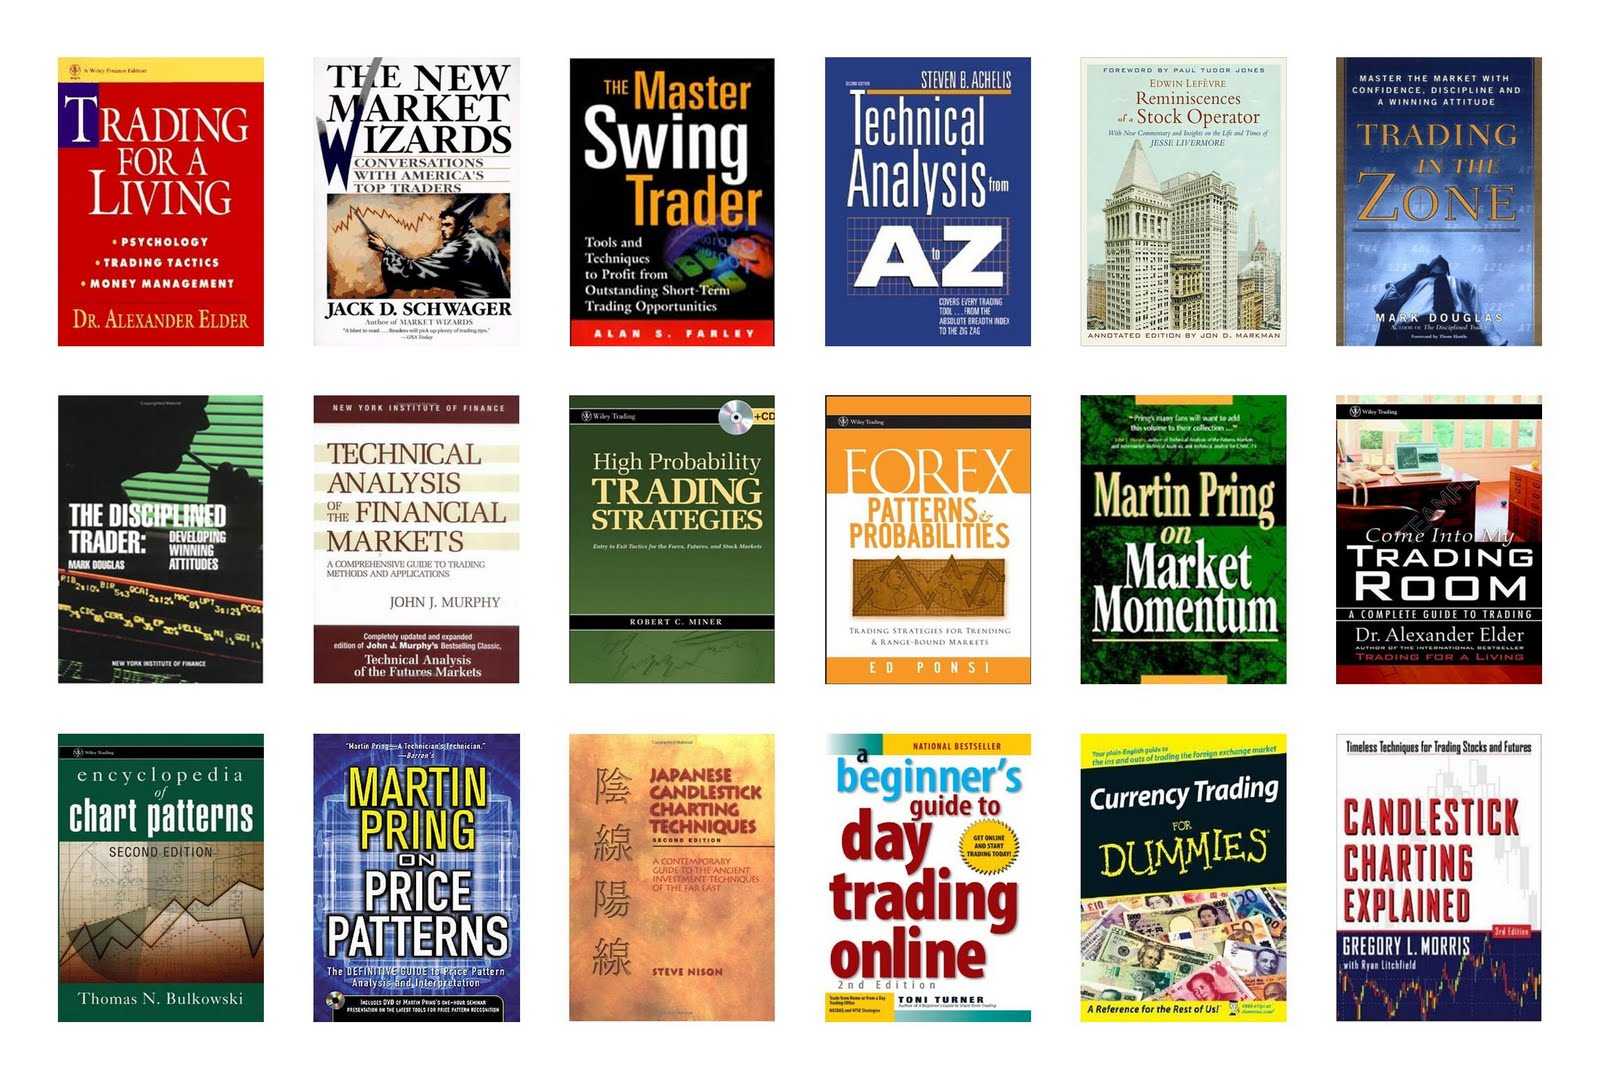 Options spread trading books